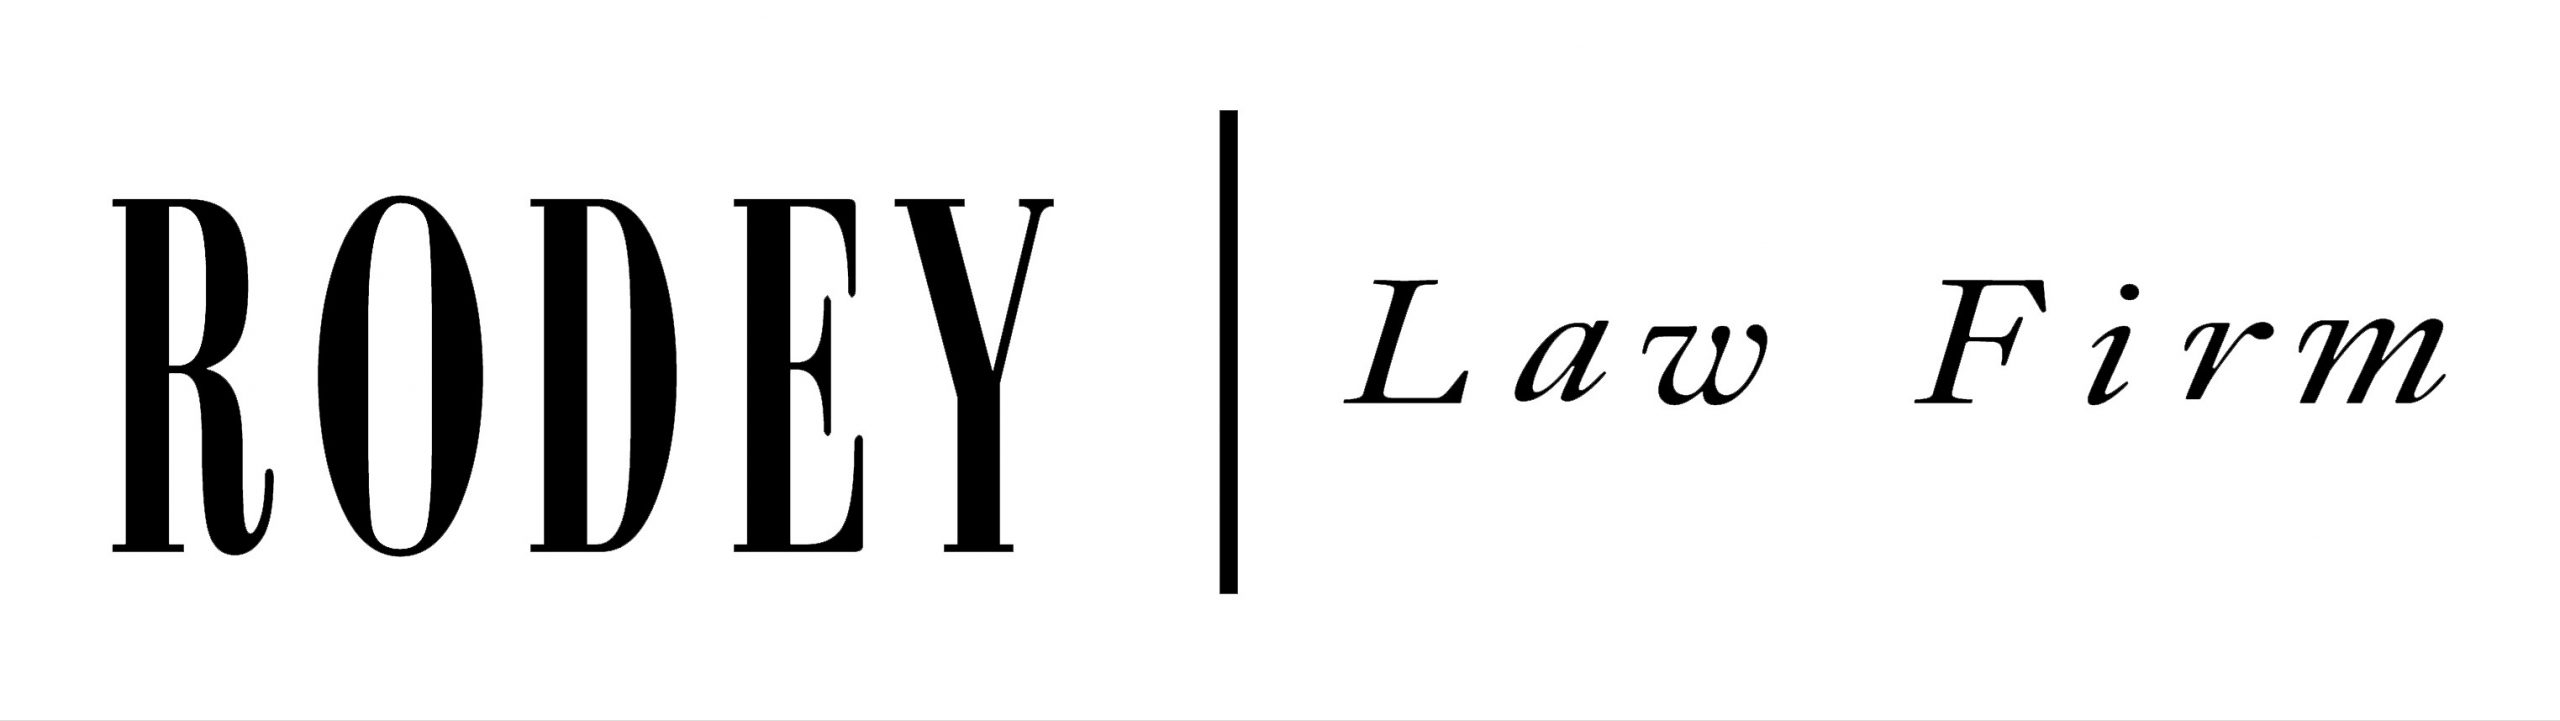 Rodey Law Firm logo